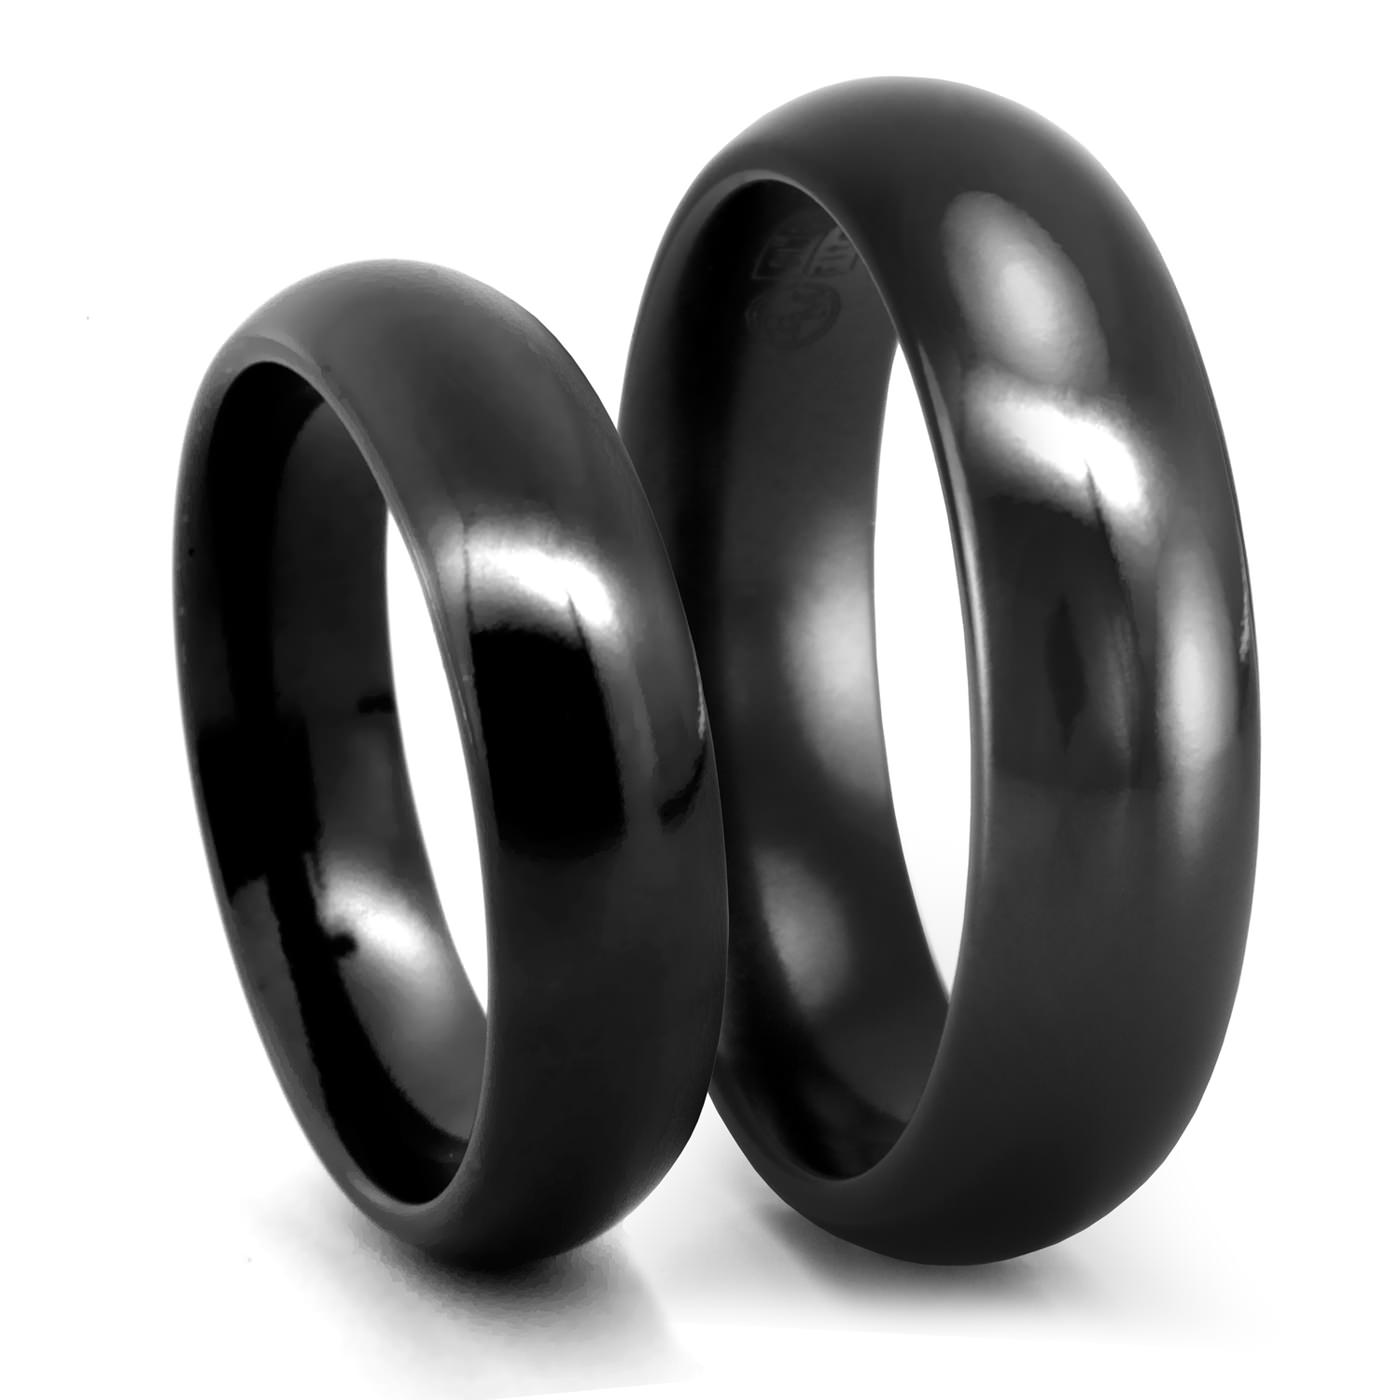 rings your exclusive black titanium for special wedding occasion